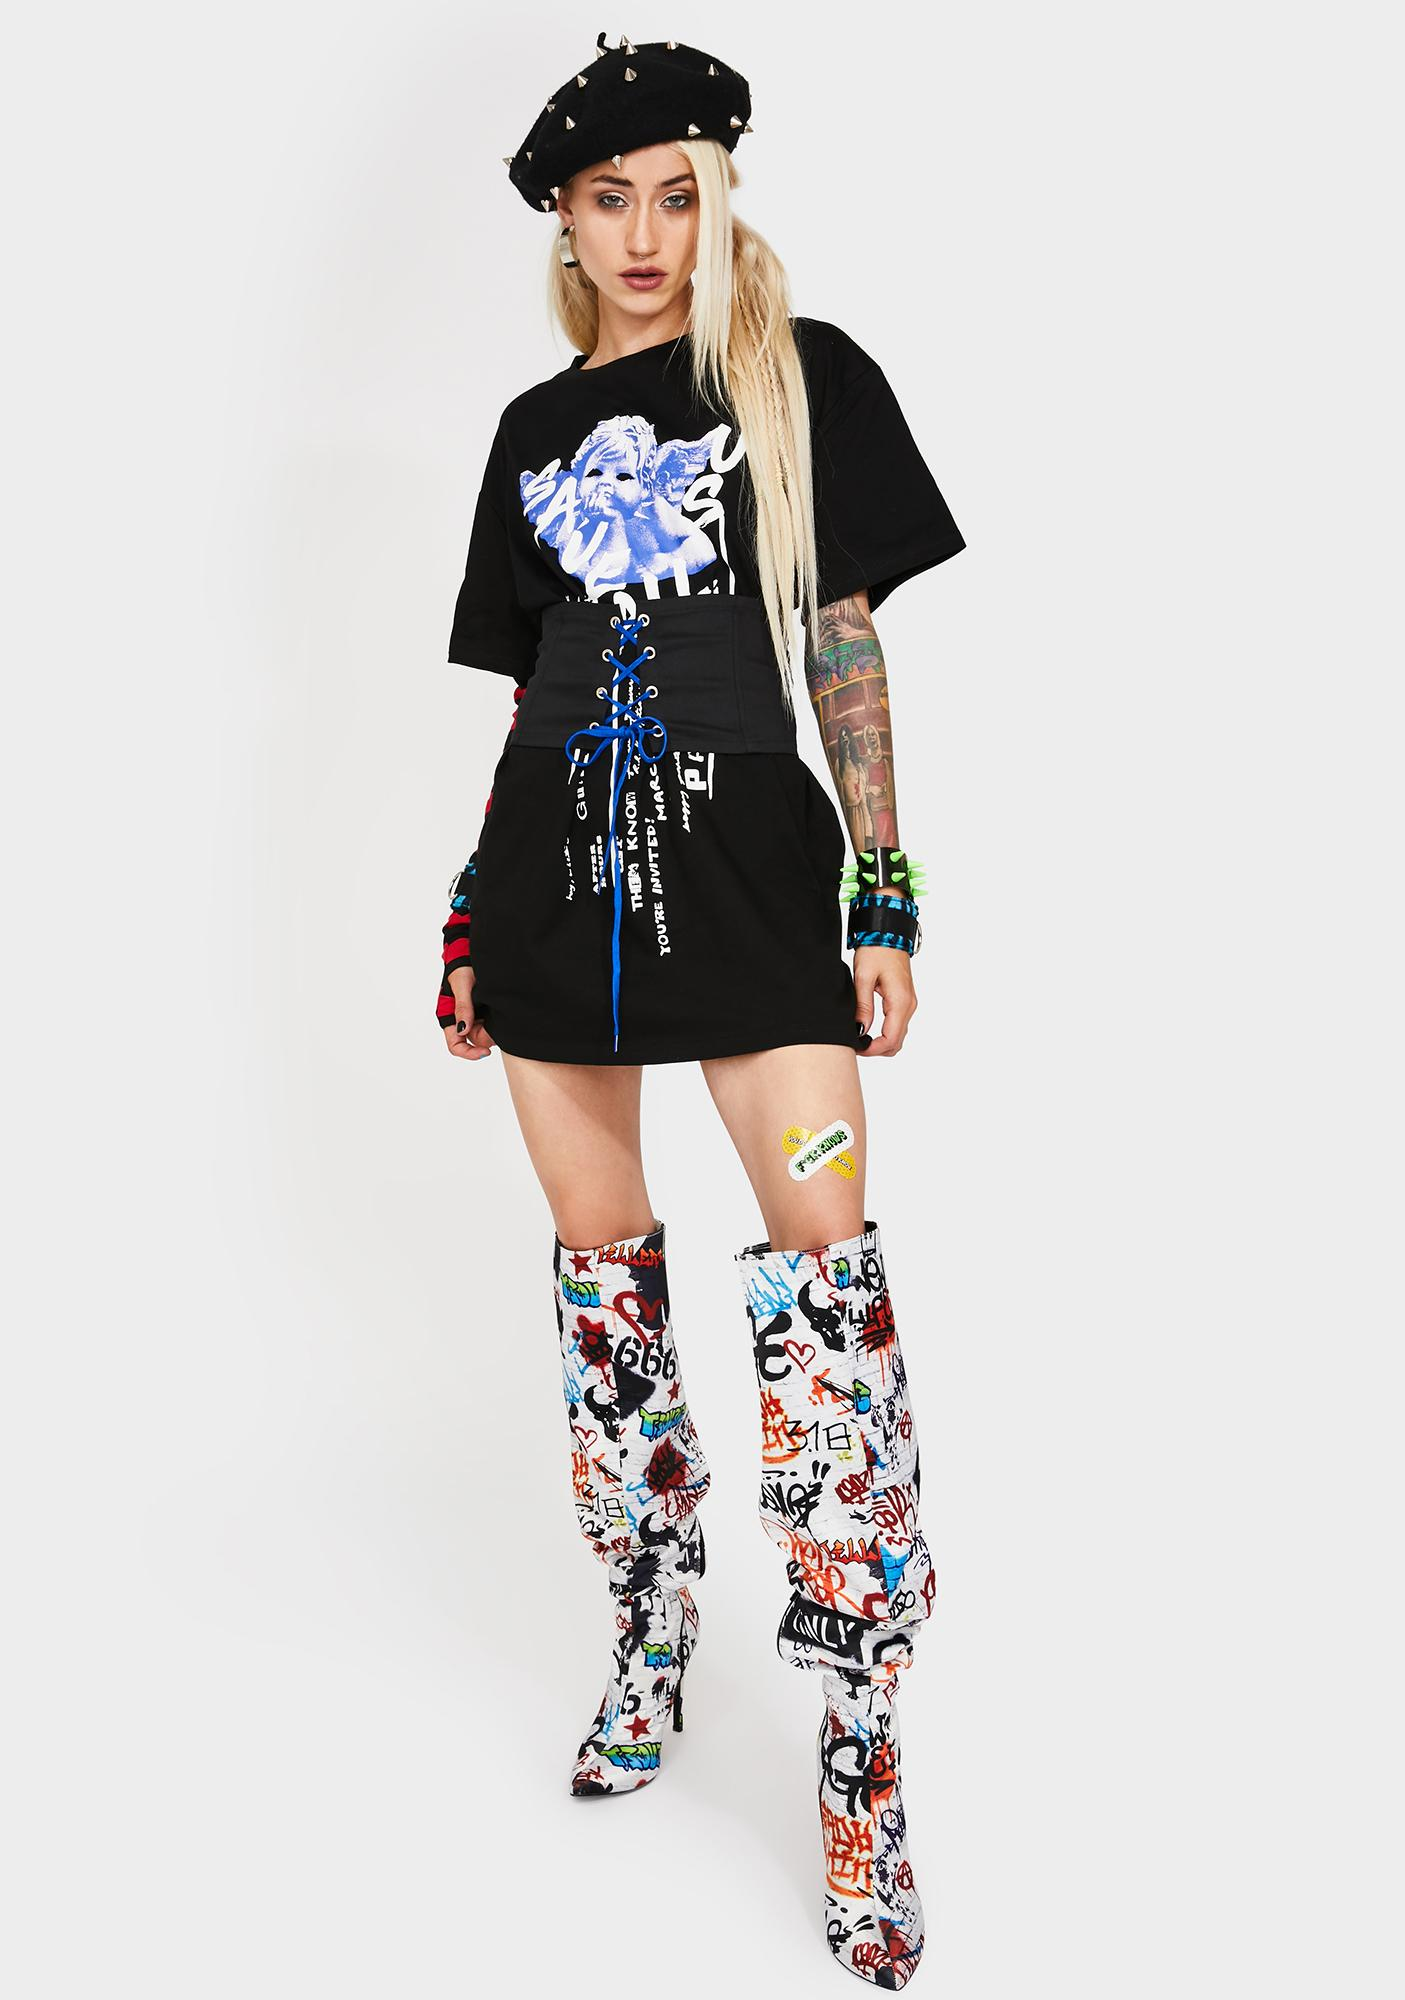 Current Mood Save Yourself Corset T-Shirt Dress